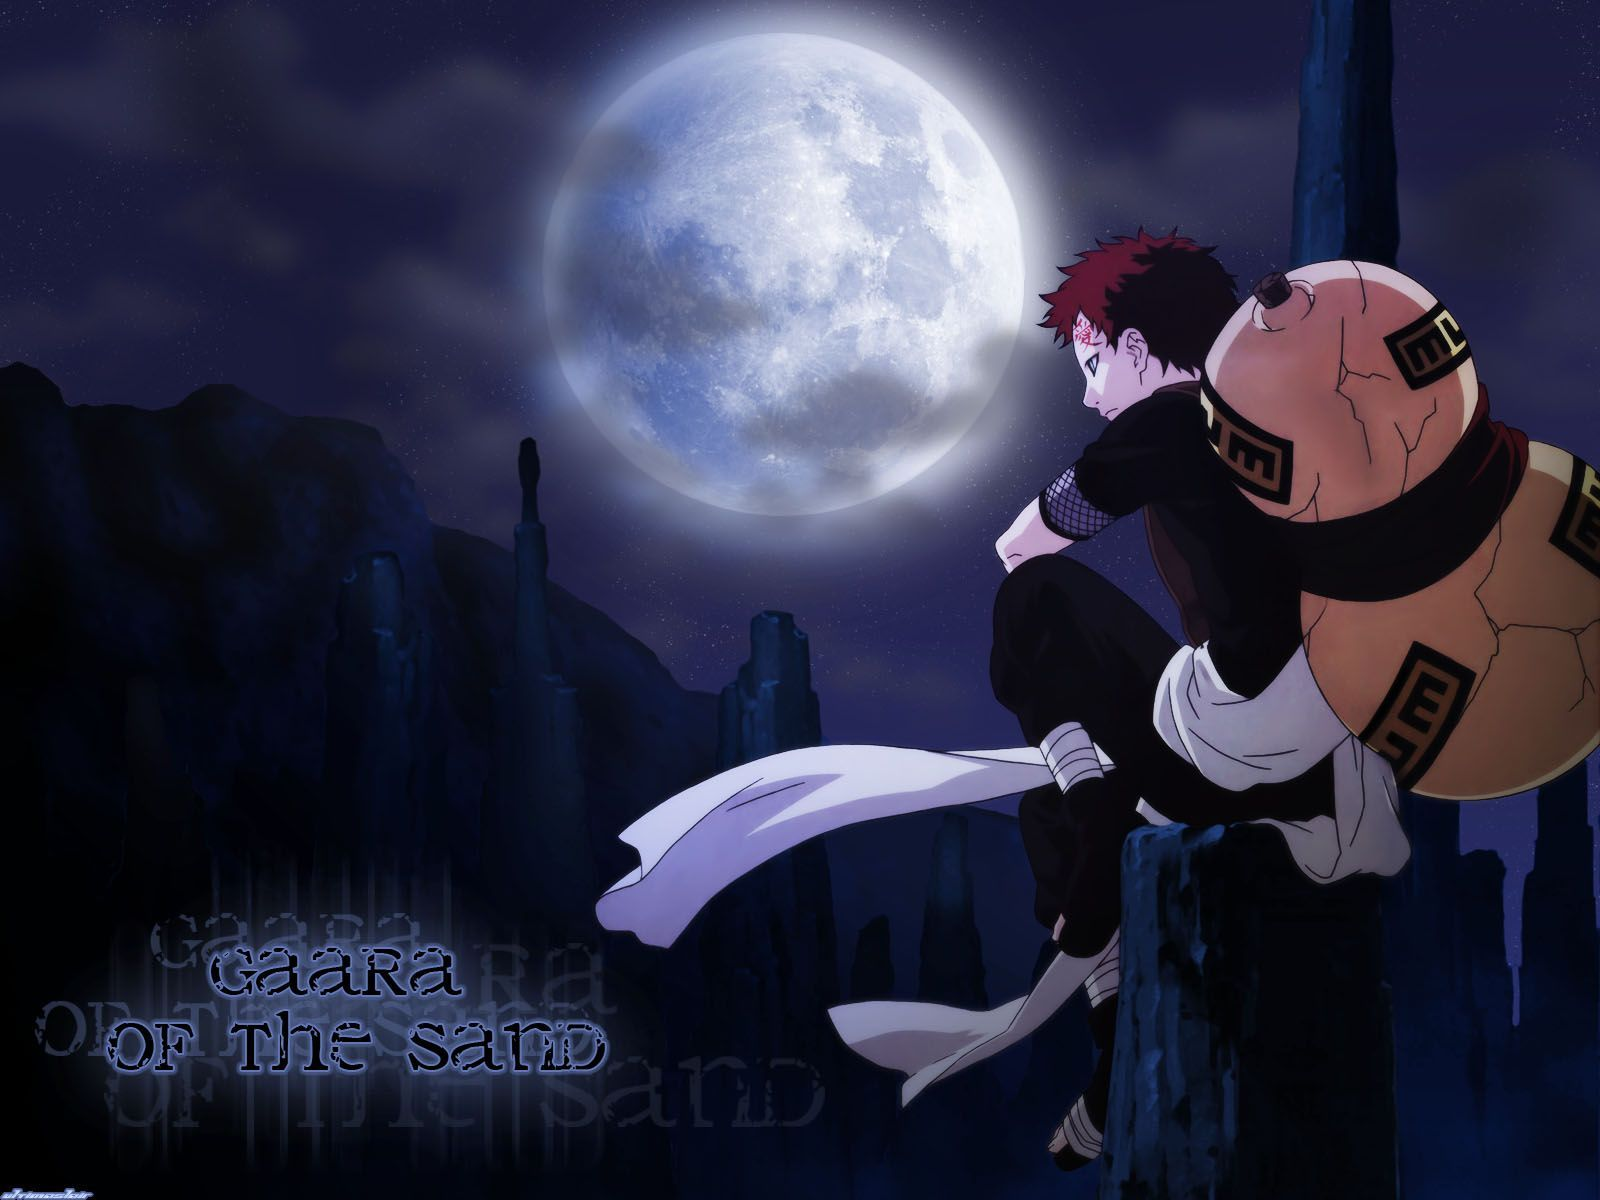 Most Inspiring Wallpaper Naruto Love - d04fa56407336d7a073fd223ce2c51cb  Perfect Image Reference_503425.jpg